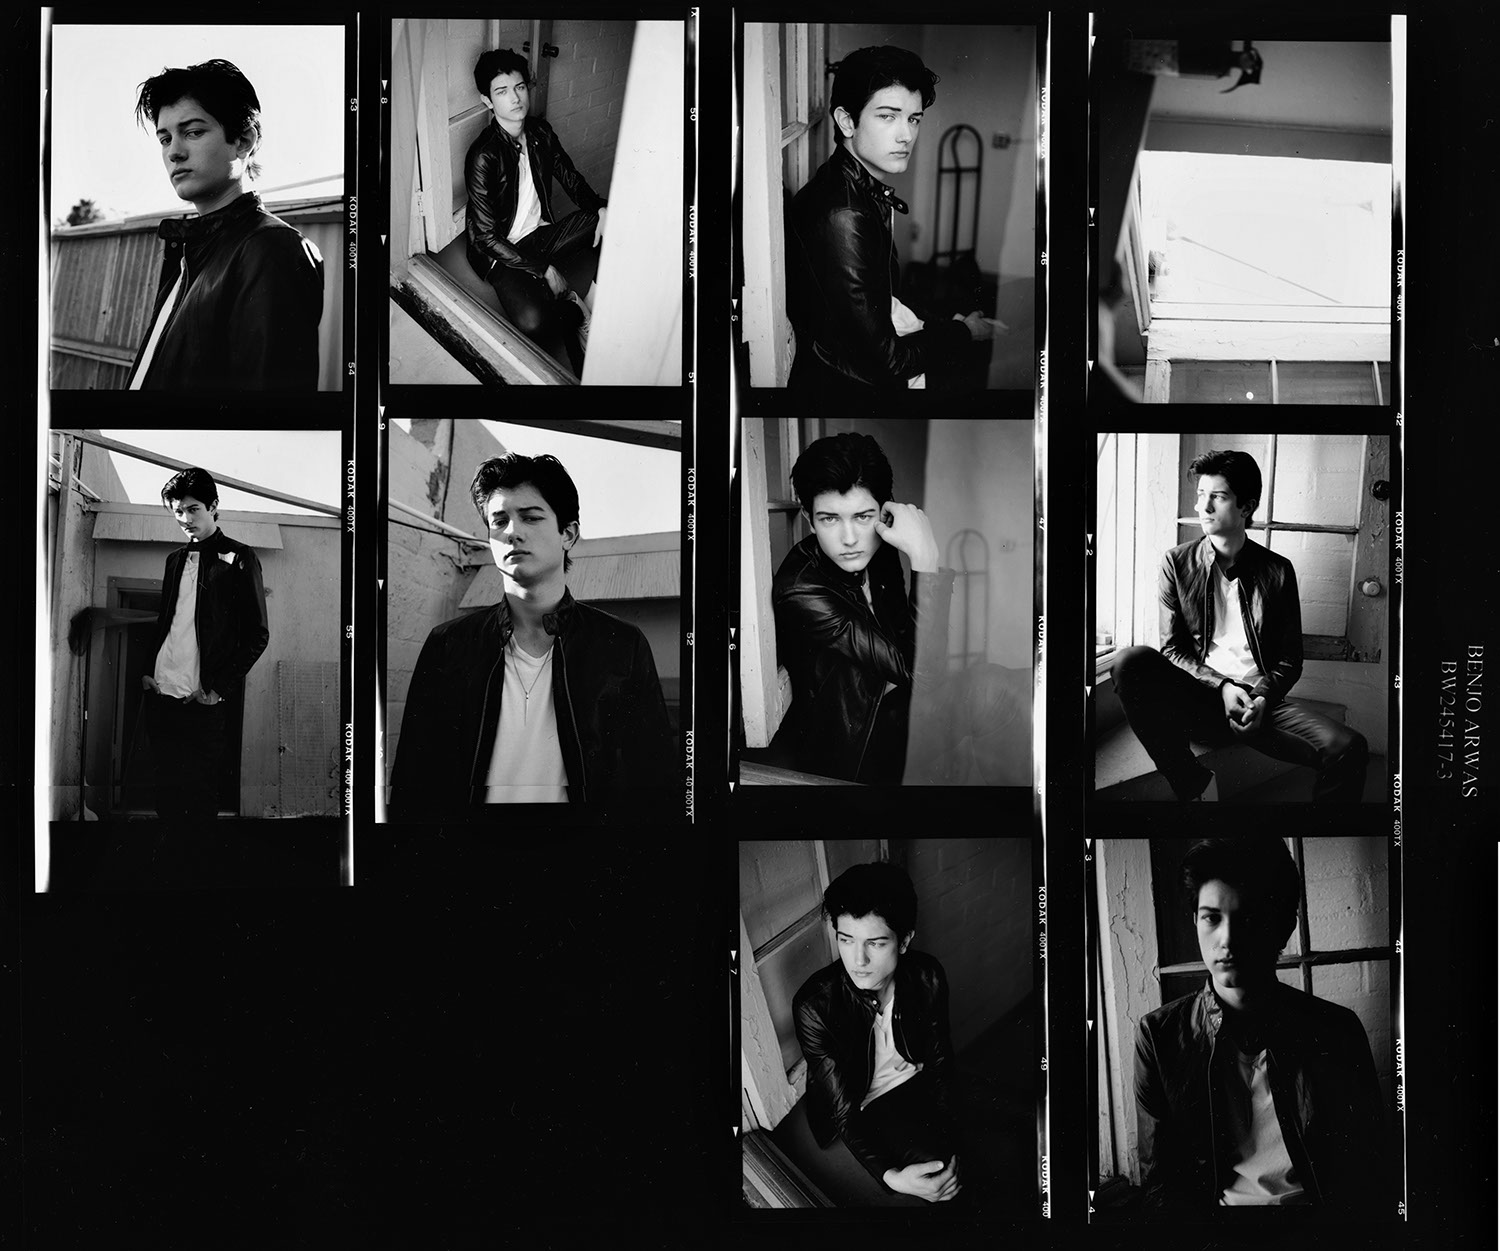 sam_evans_medium_format_contact_sheet_3